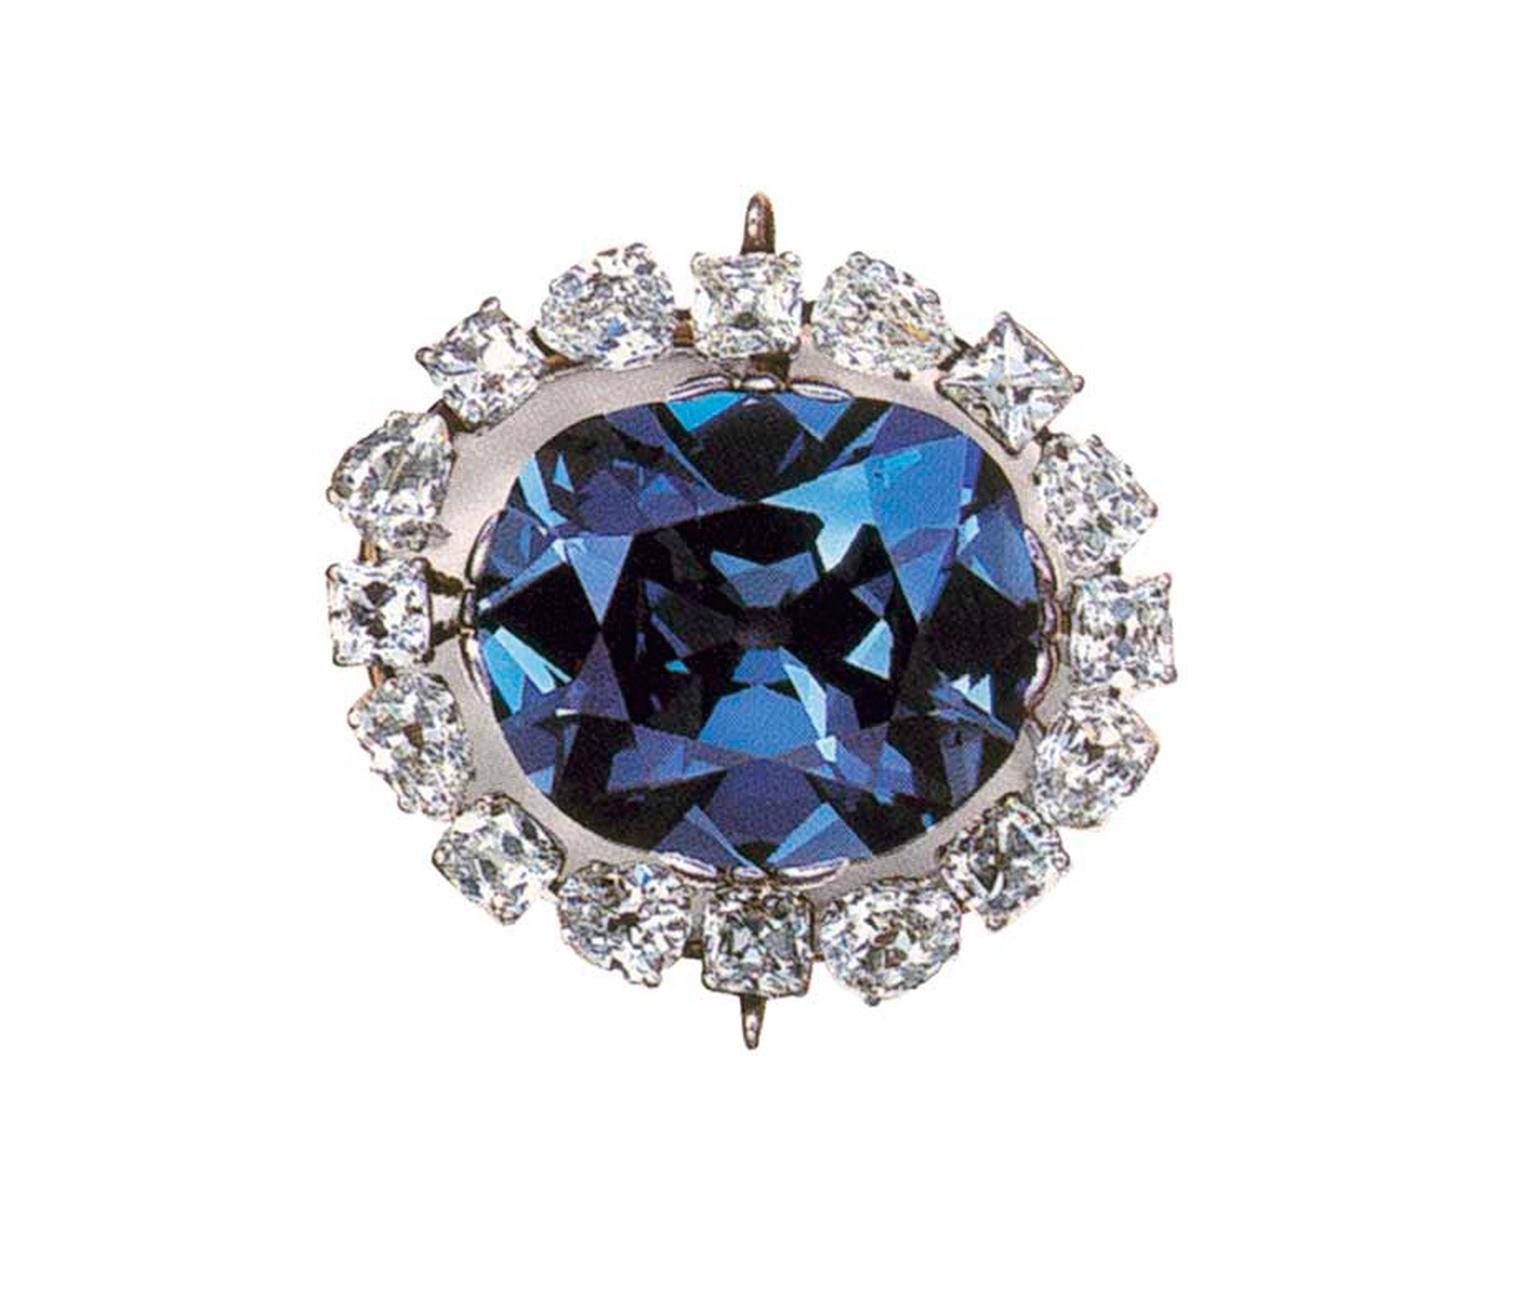 "Described as ""the most famous diamond in the world"", the 45.52ct deep-blue Hope Diamond, which was in Cartier's ownership in the early 1900s, is now on display at the Smithsonian Museum in Washington, DC."